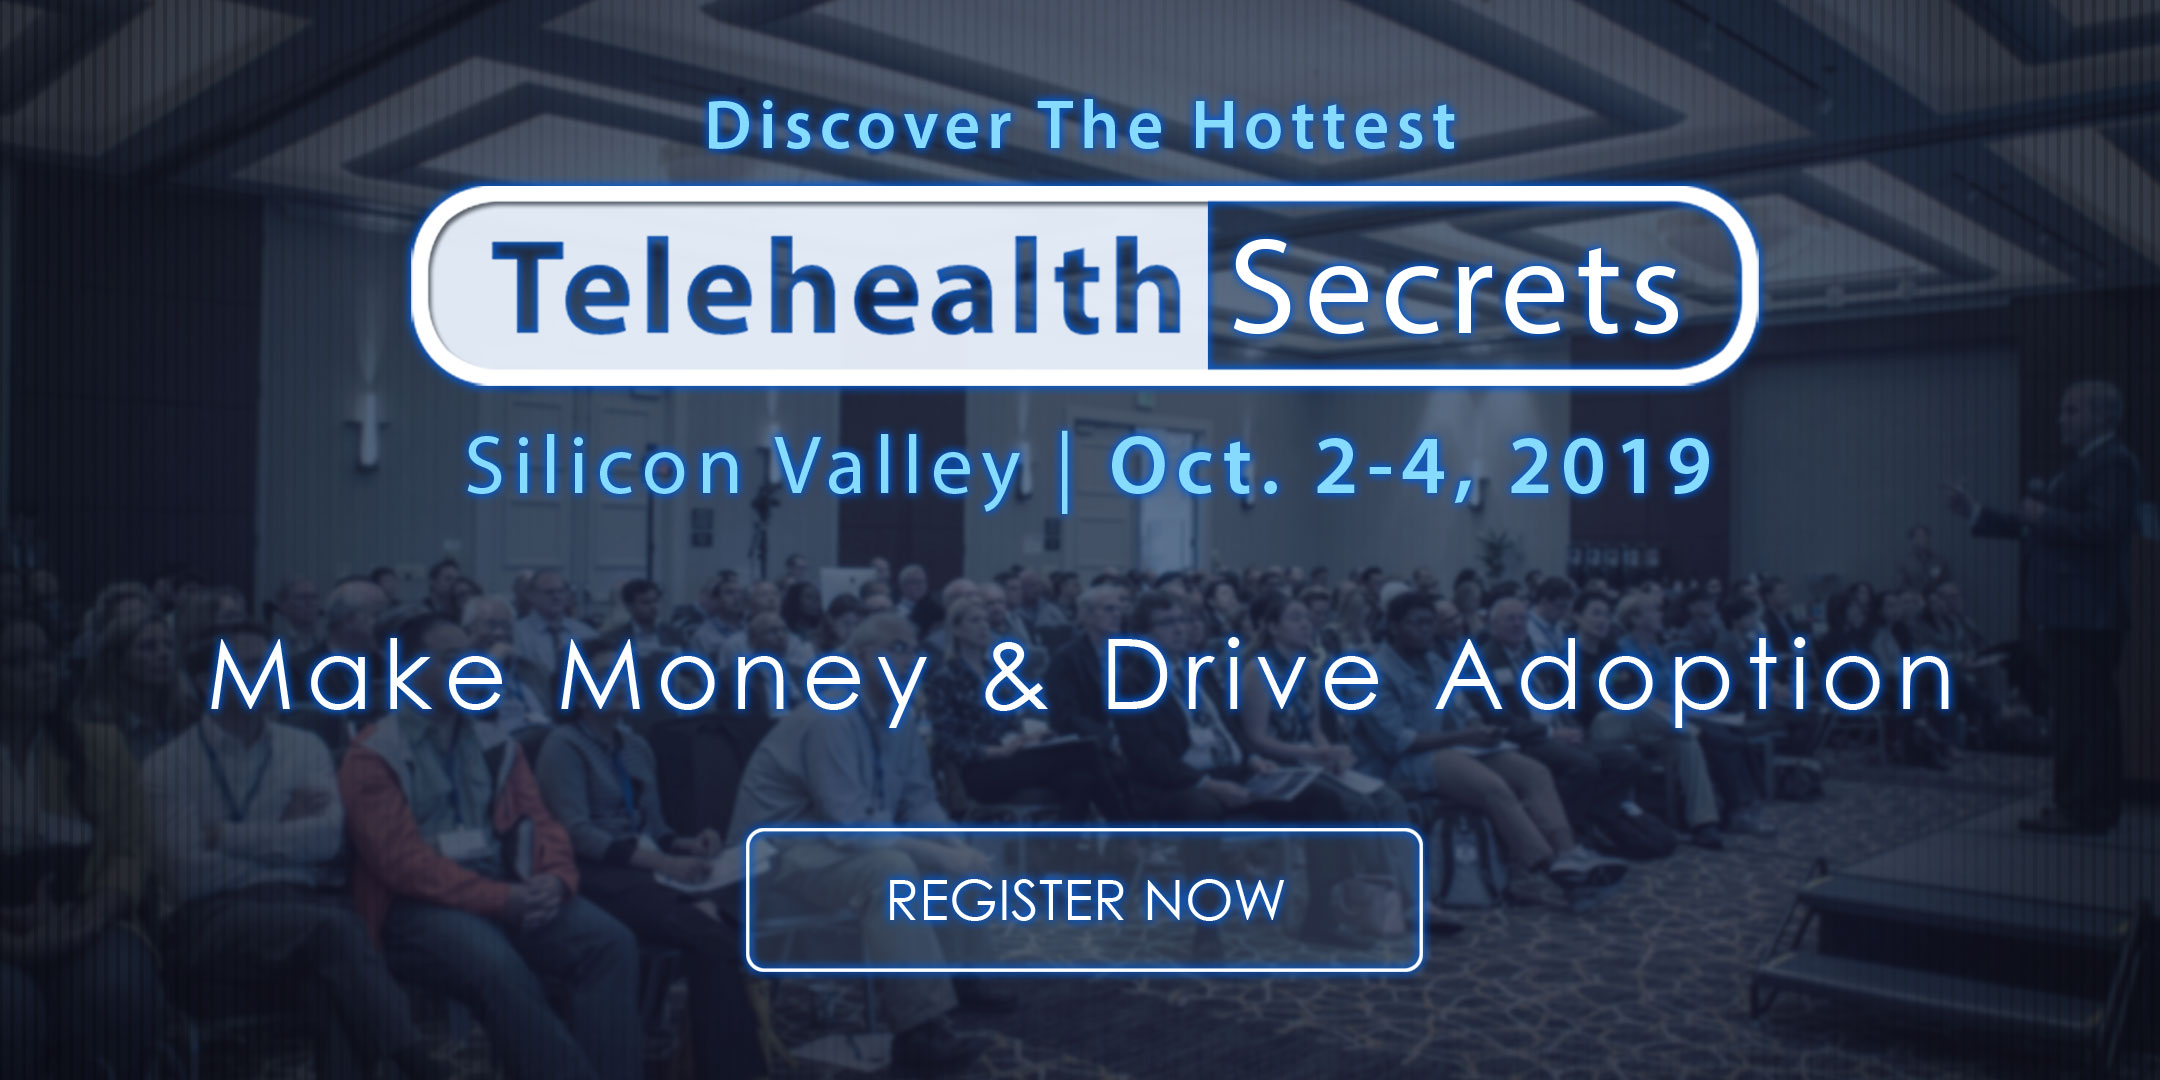 Healthcare Technology Conferences 2019